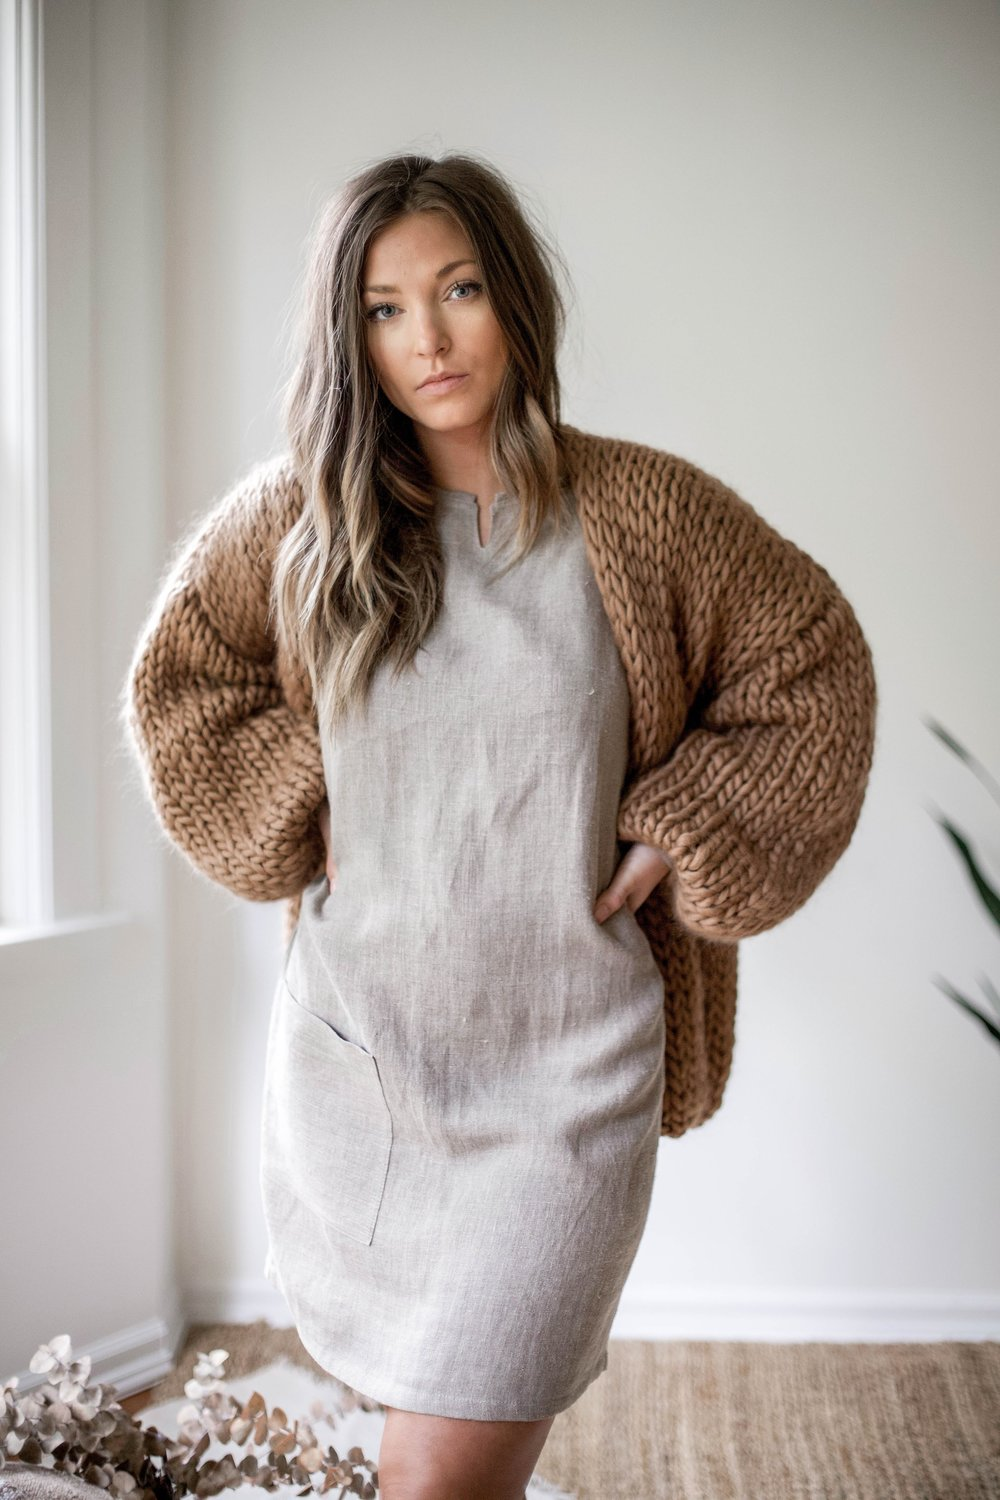 nomi-designs_ali-dress_natural-linen-dress-with-pockets_front_styled-with-oversized-hendik-lou-sweater-details.jpg